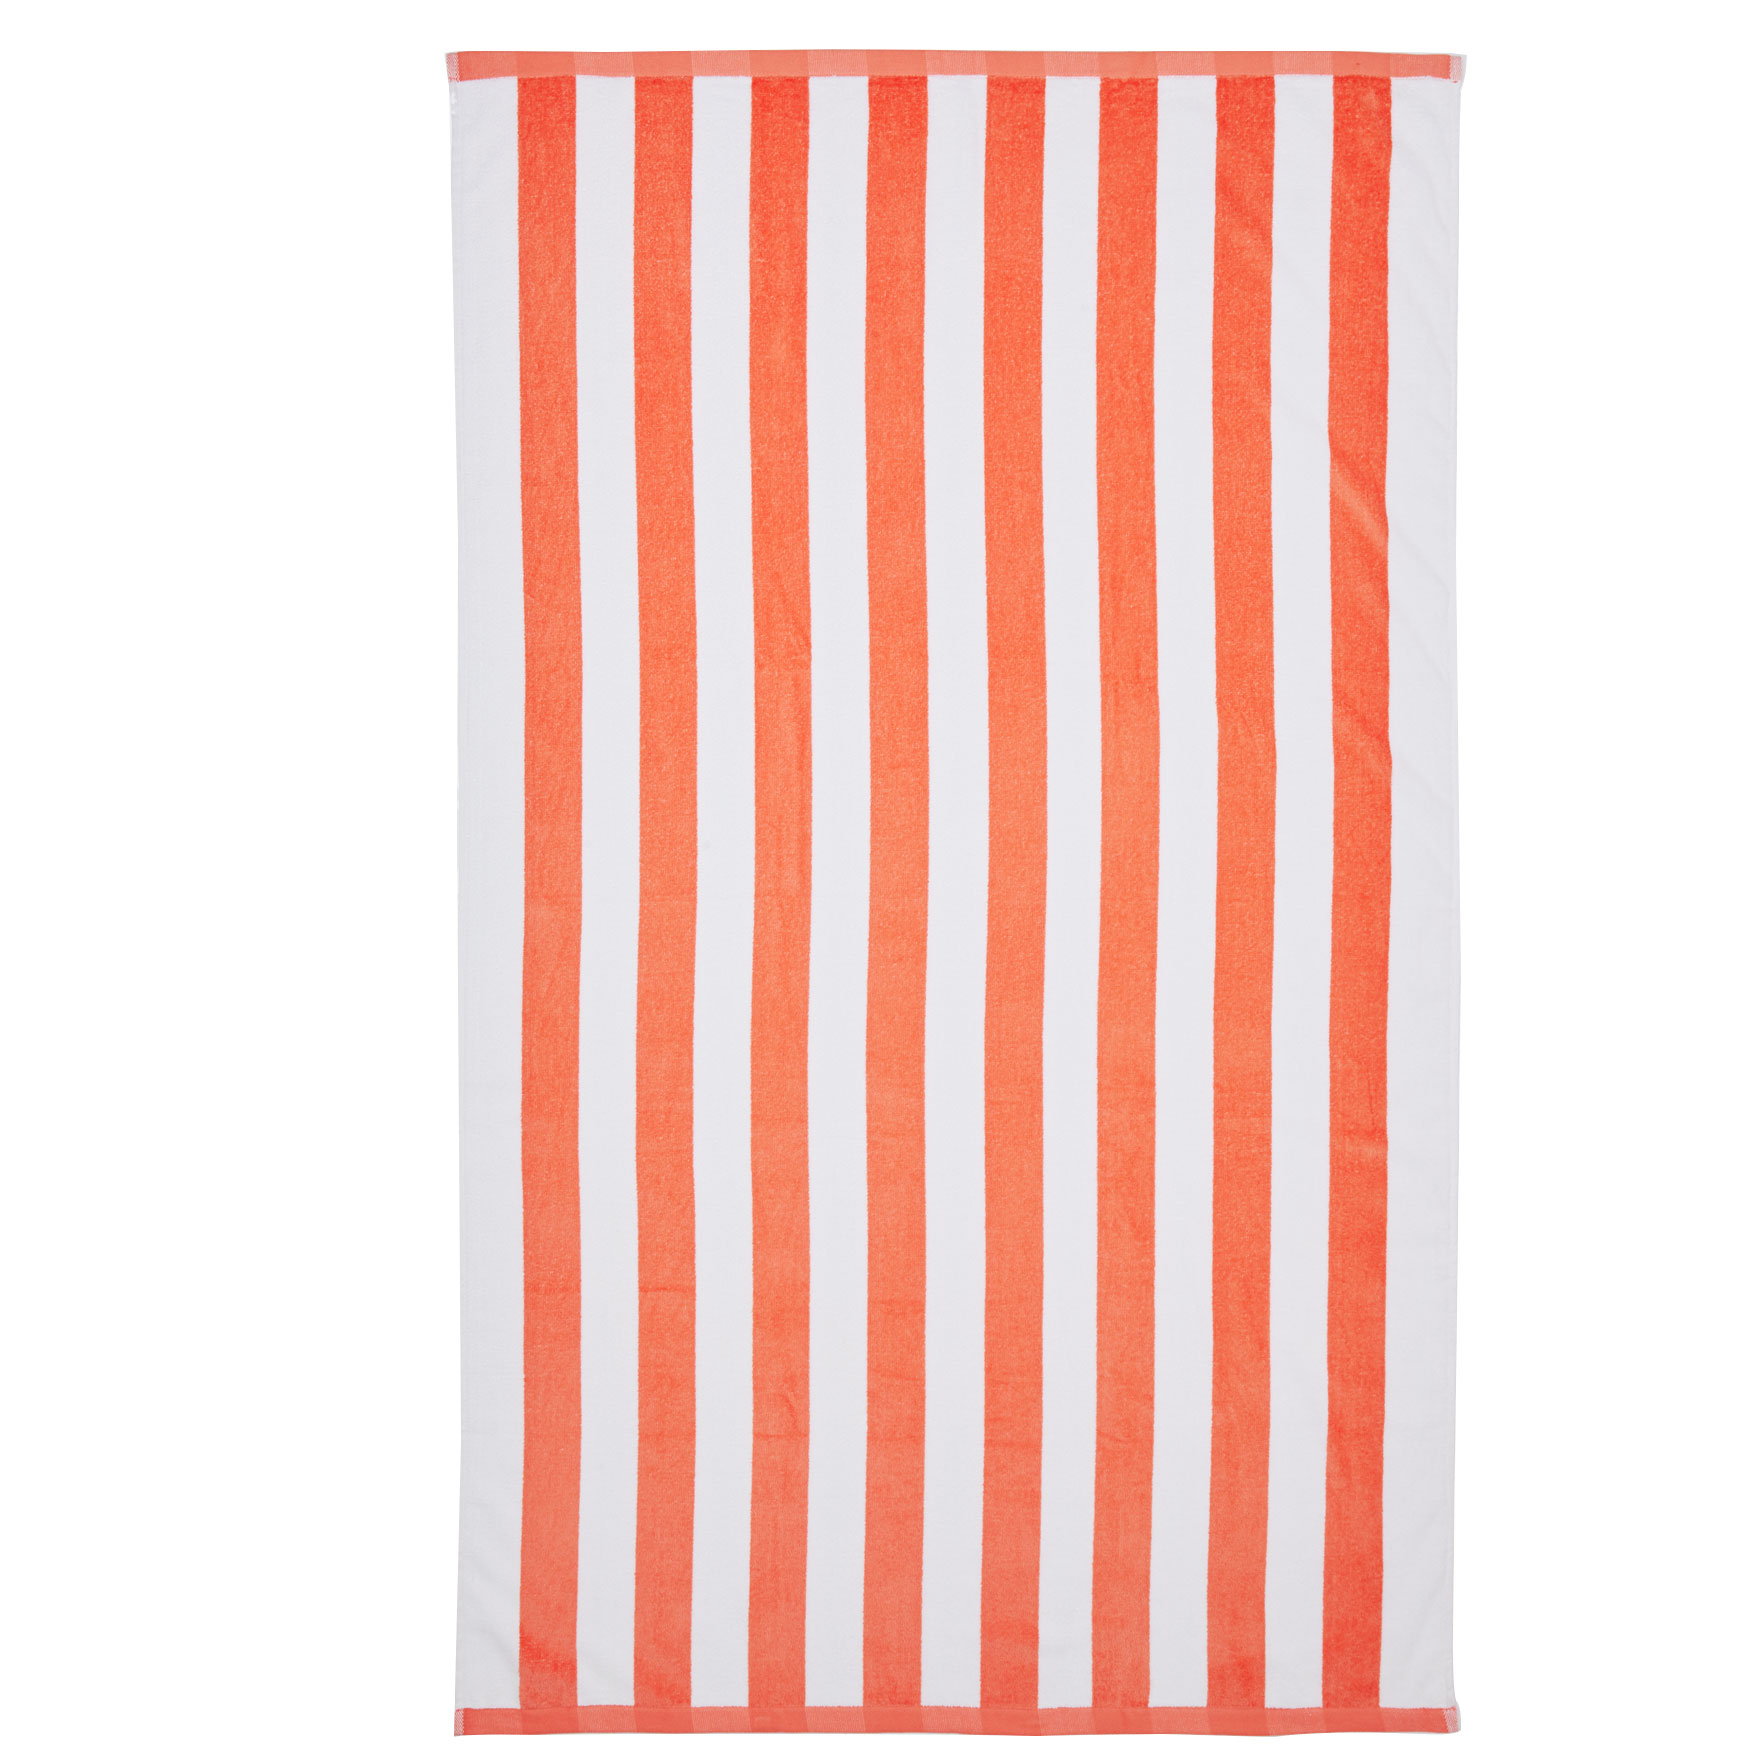 Cabana Striped Beach Towel, PEACH